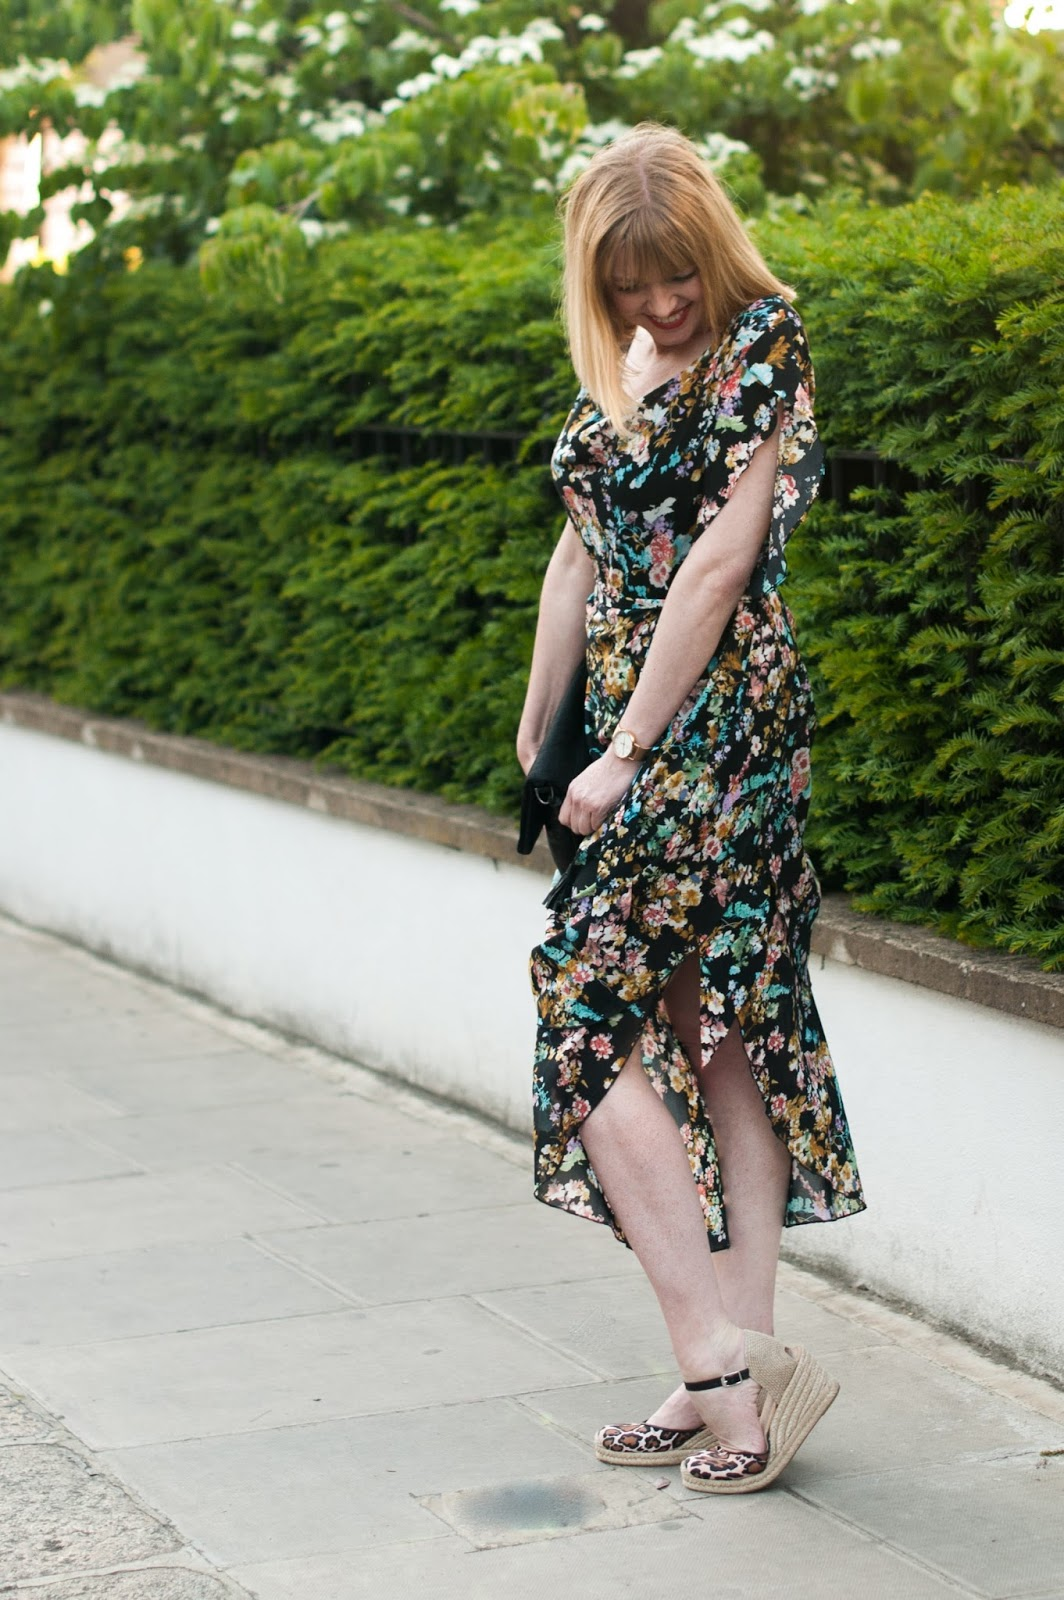 Alice's Pig Floral draped vintage style dress with leopard print espadrilles, over 40 style